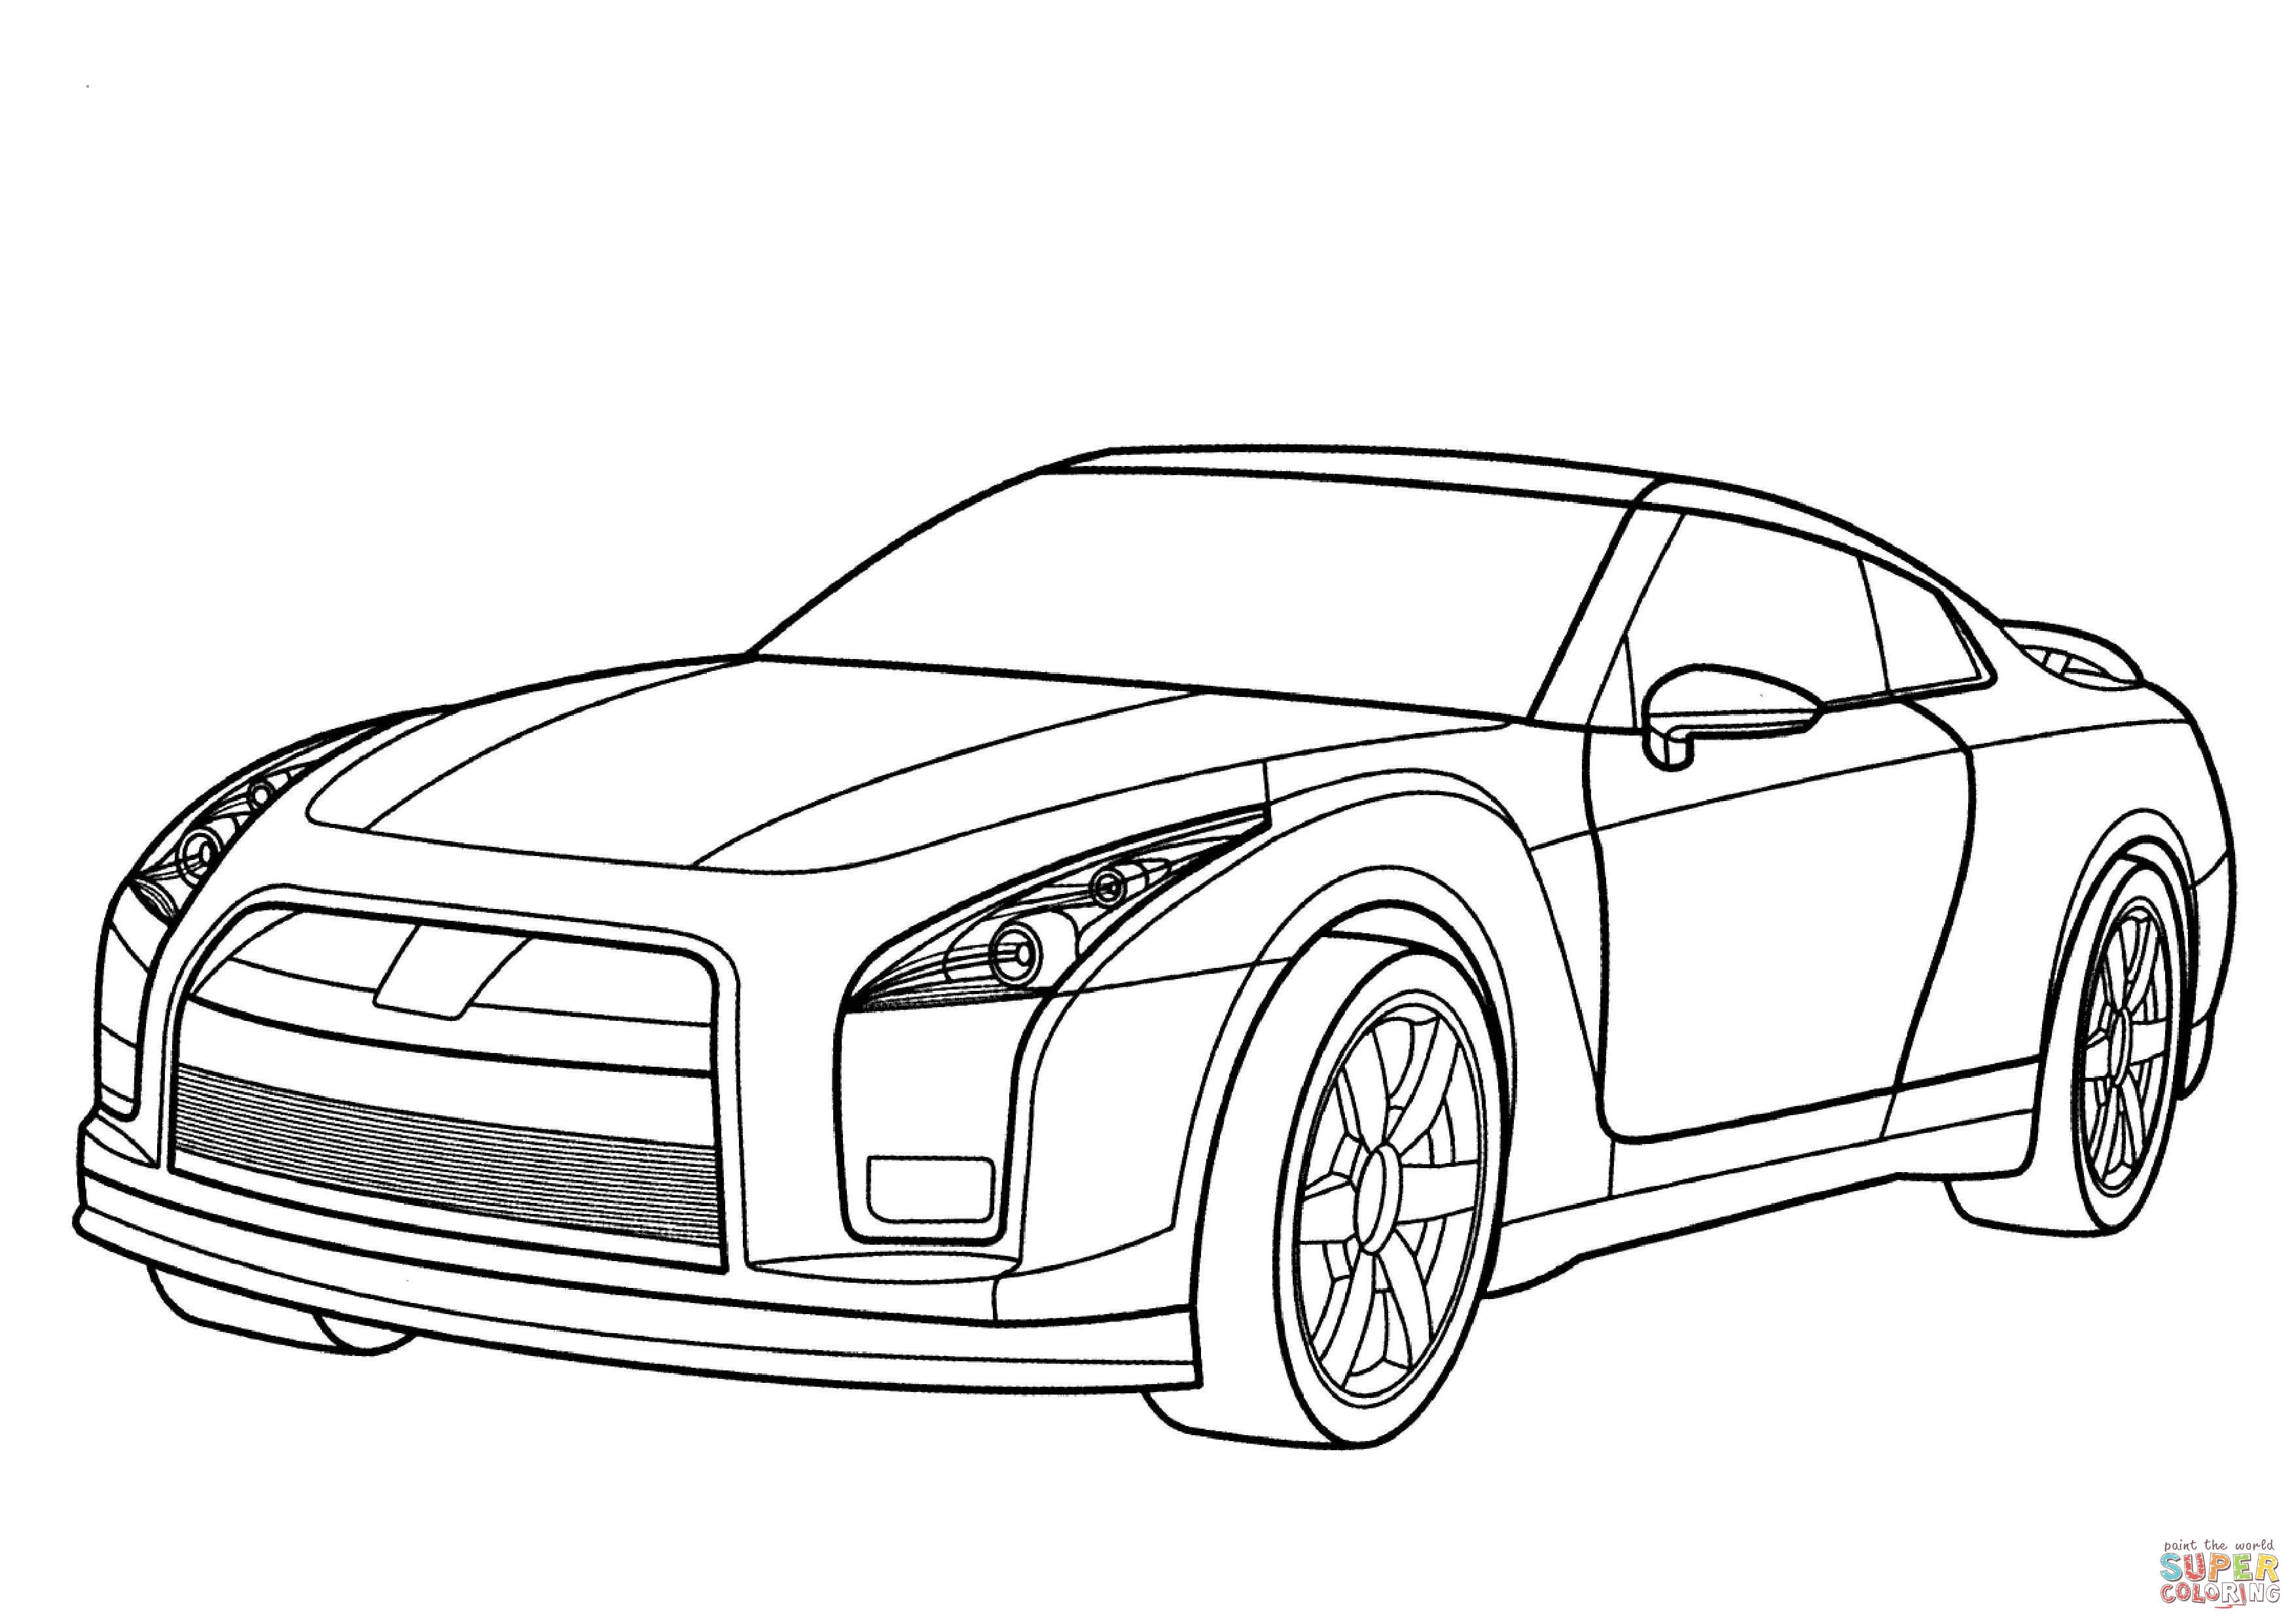 gtr car coloring pages gtr coloring pages downloadable educative printable gtr car pages coloring